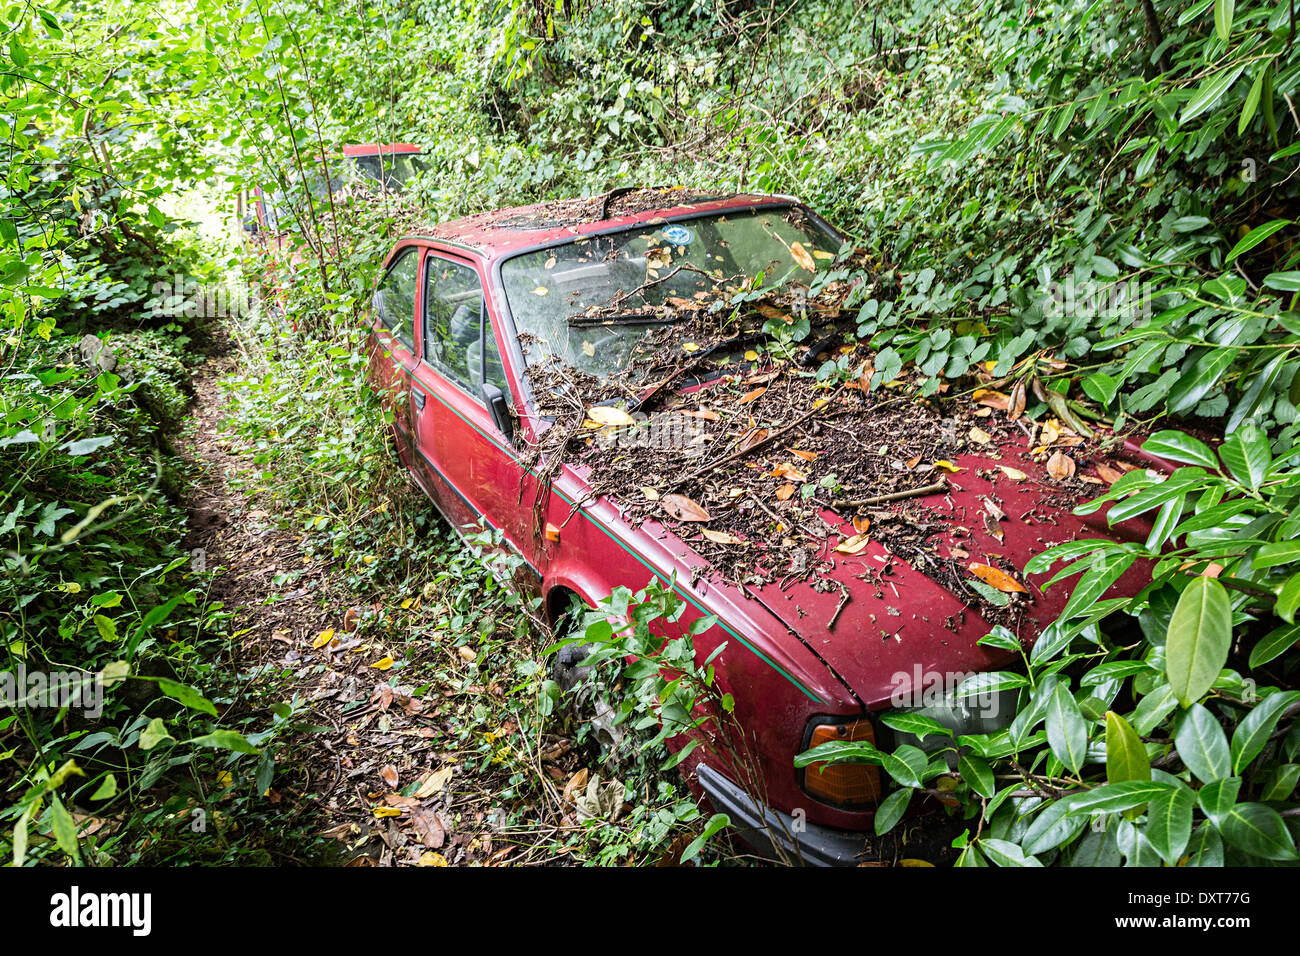 Cars abandoned in woodland and overgrown, Abergavenny, Wales, UK - Stock Image